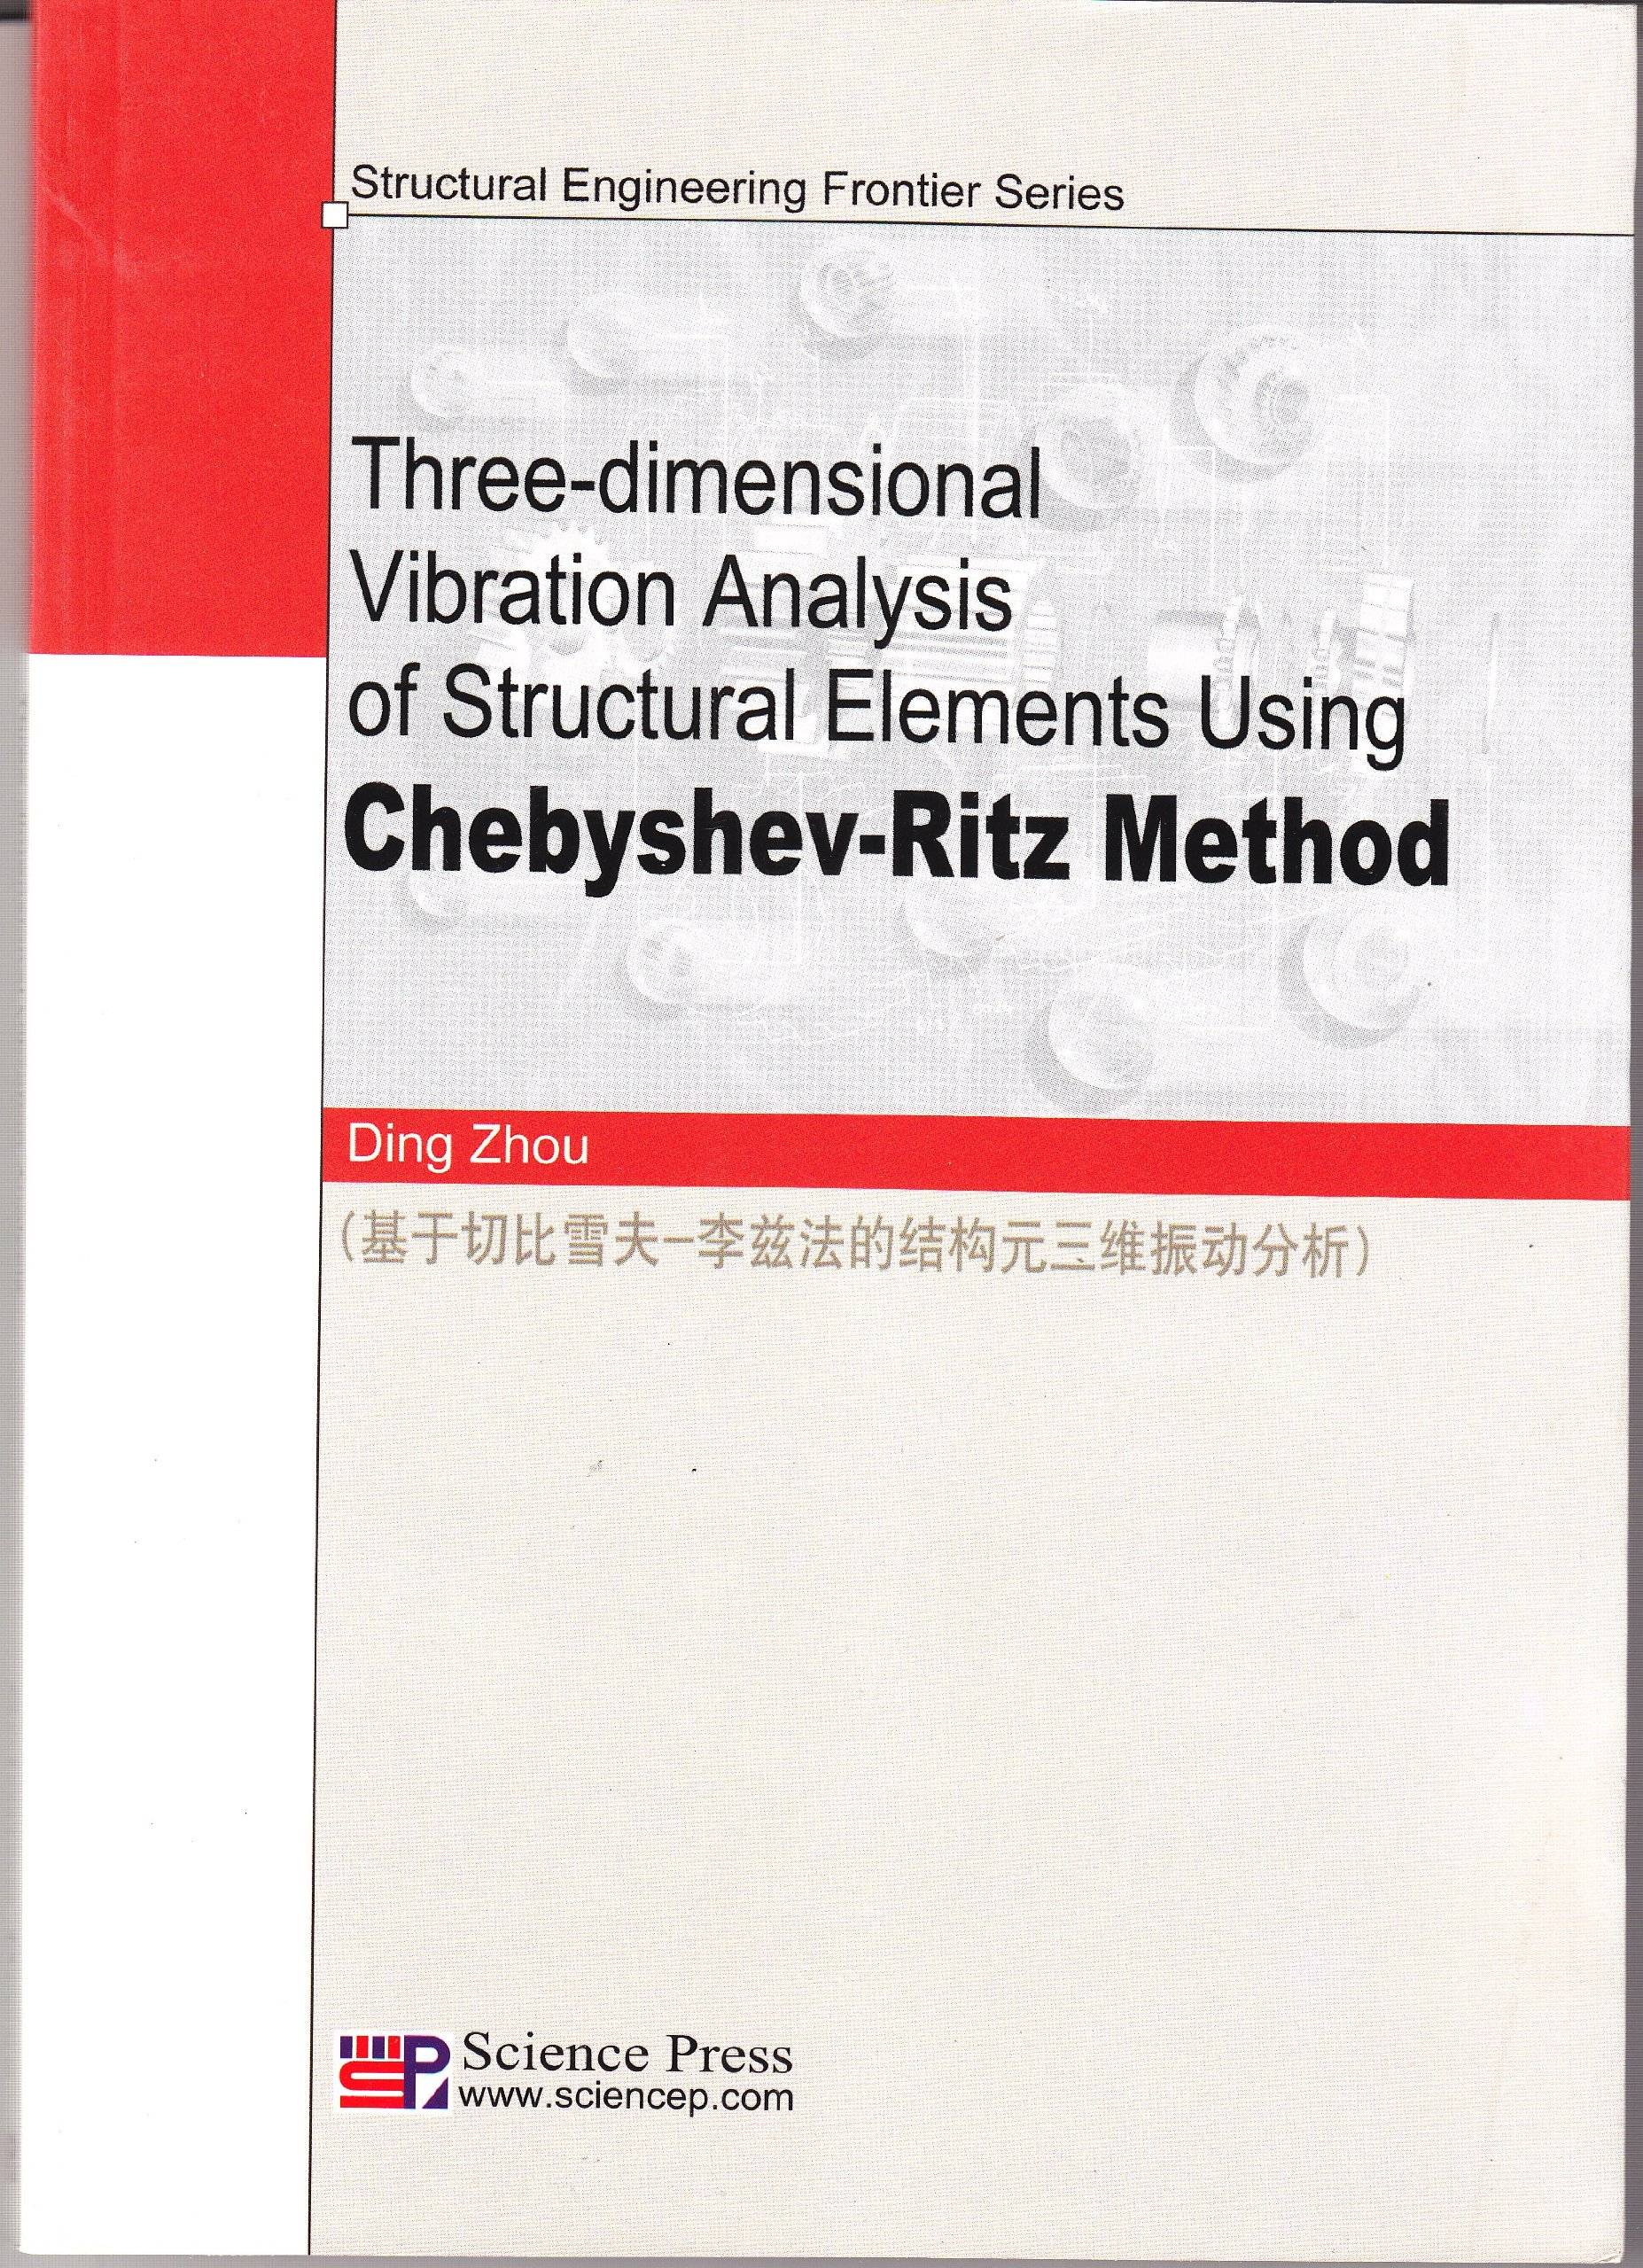 Three-dimentional Vibration Analysis of Structural Elements Using Chebyshev-Ritz Method ebook